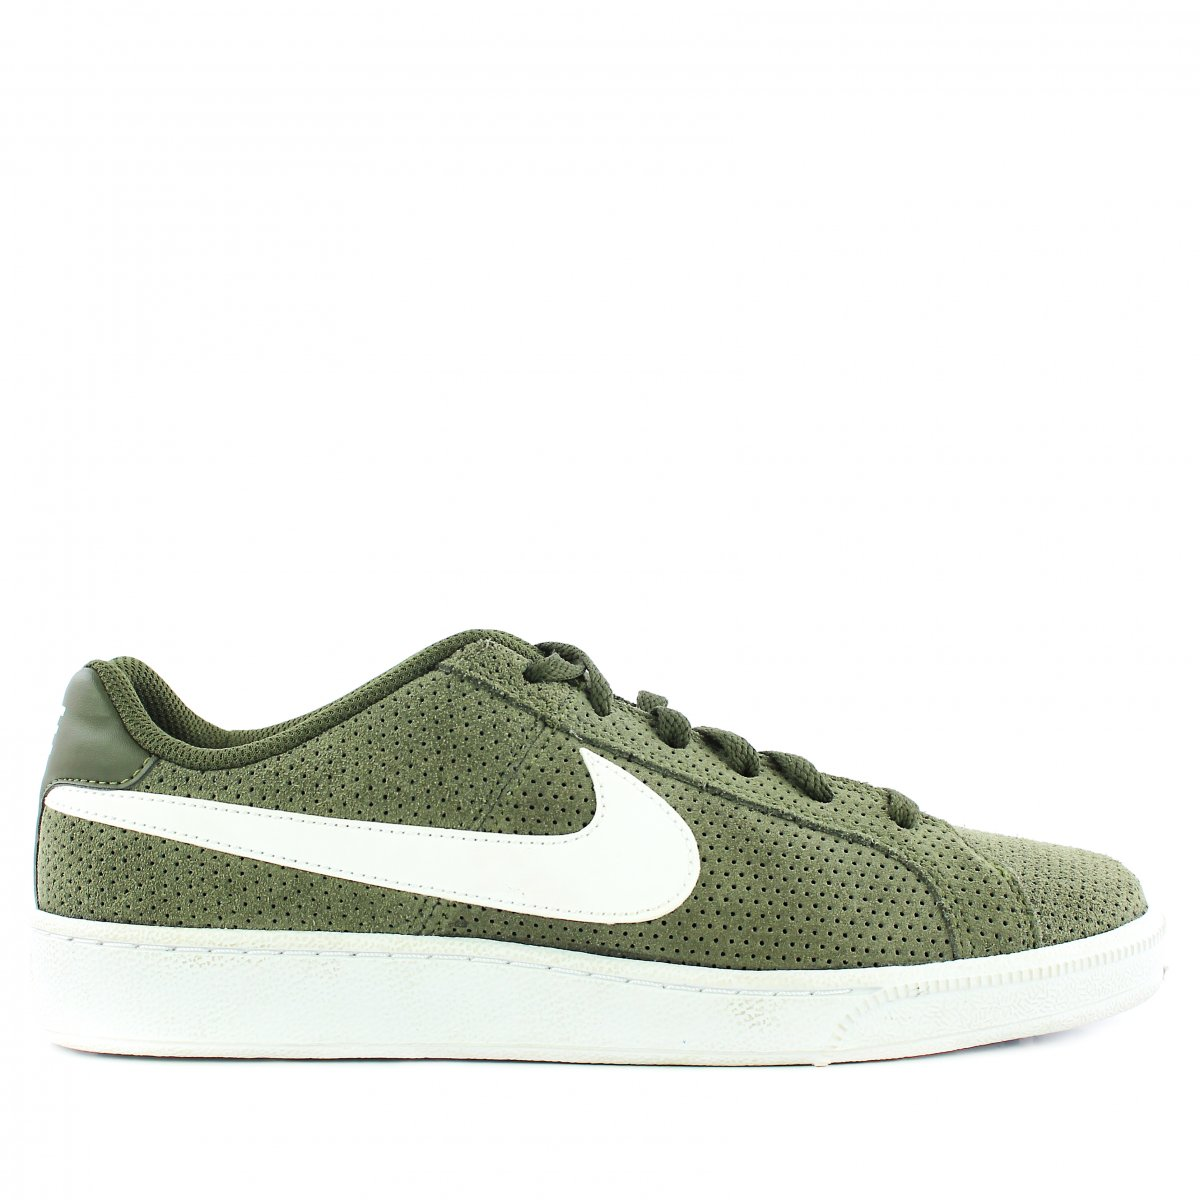 35894587941 Tenis Nike Court Royale Suede